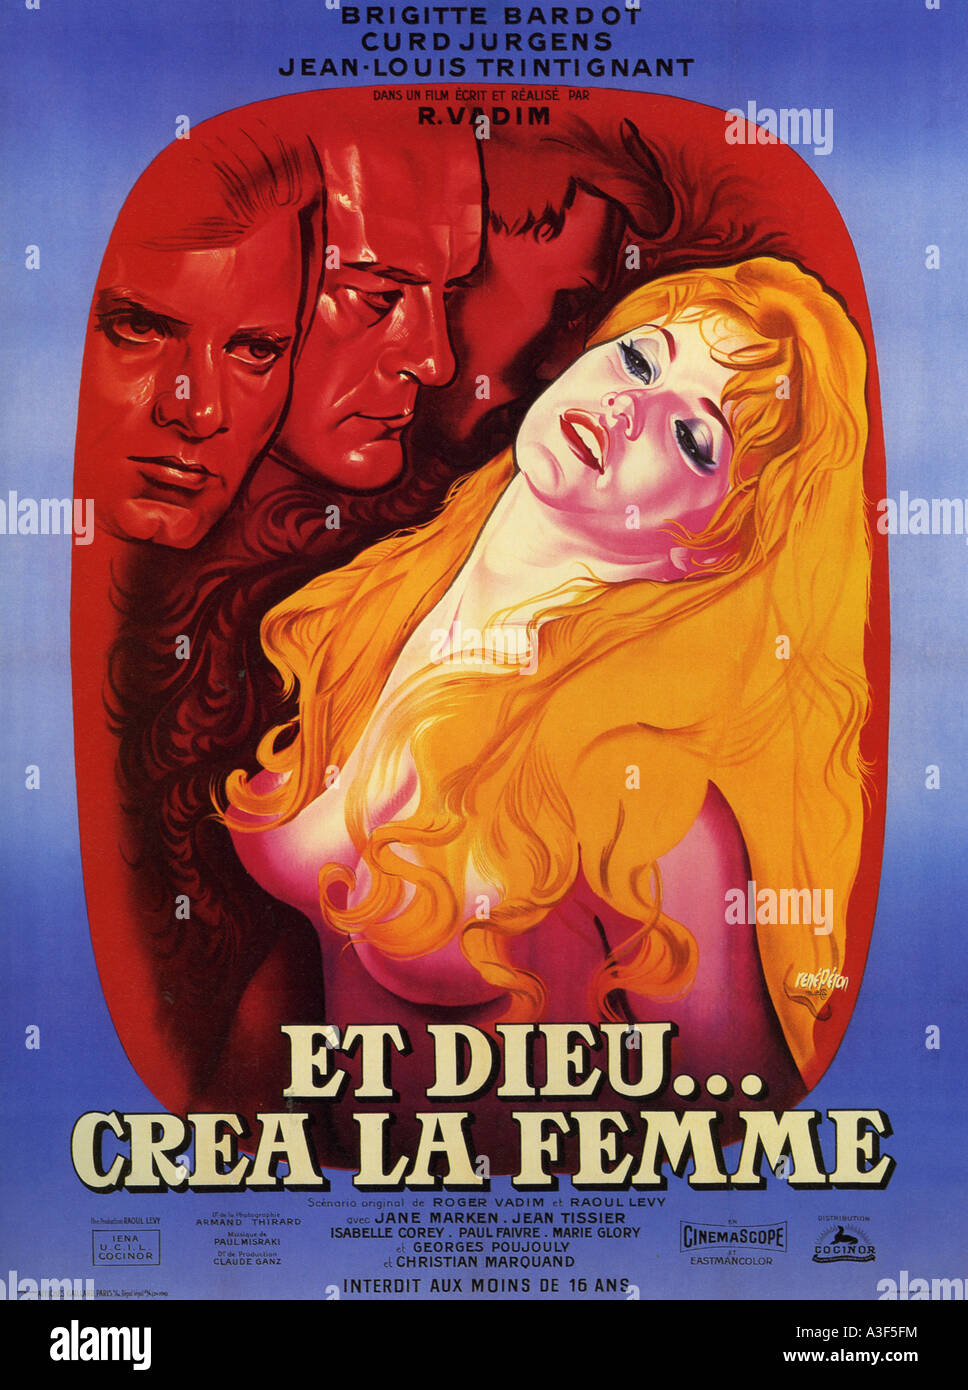 AND GOD CREATED WOMAN (ET DIEU CREA LA FEMME) poster for 1957 Iena-Houdu film with Brigitte Bardot - Stock Image